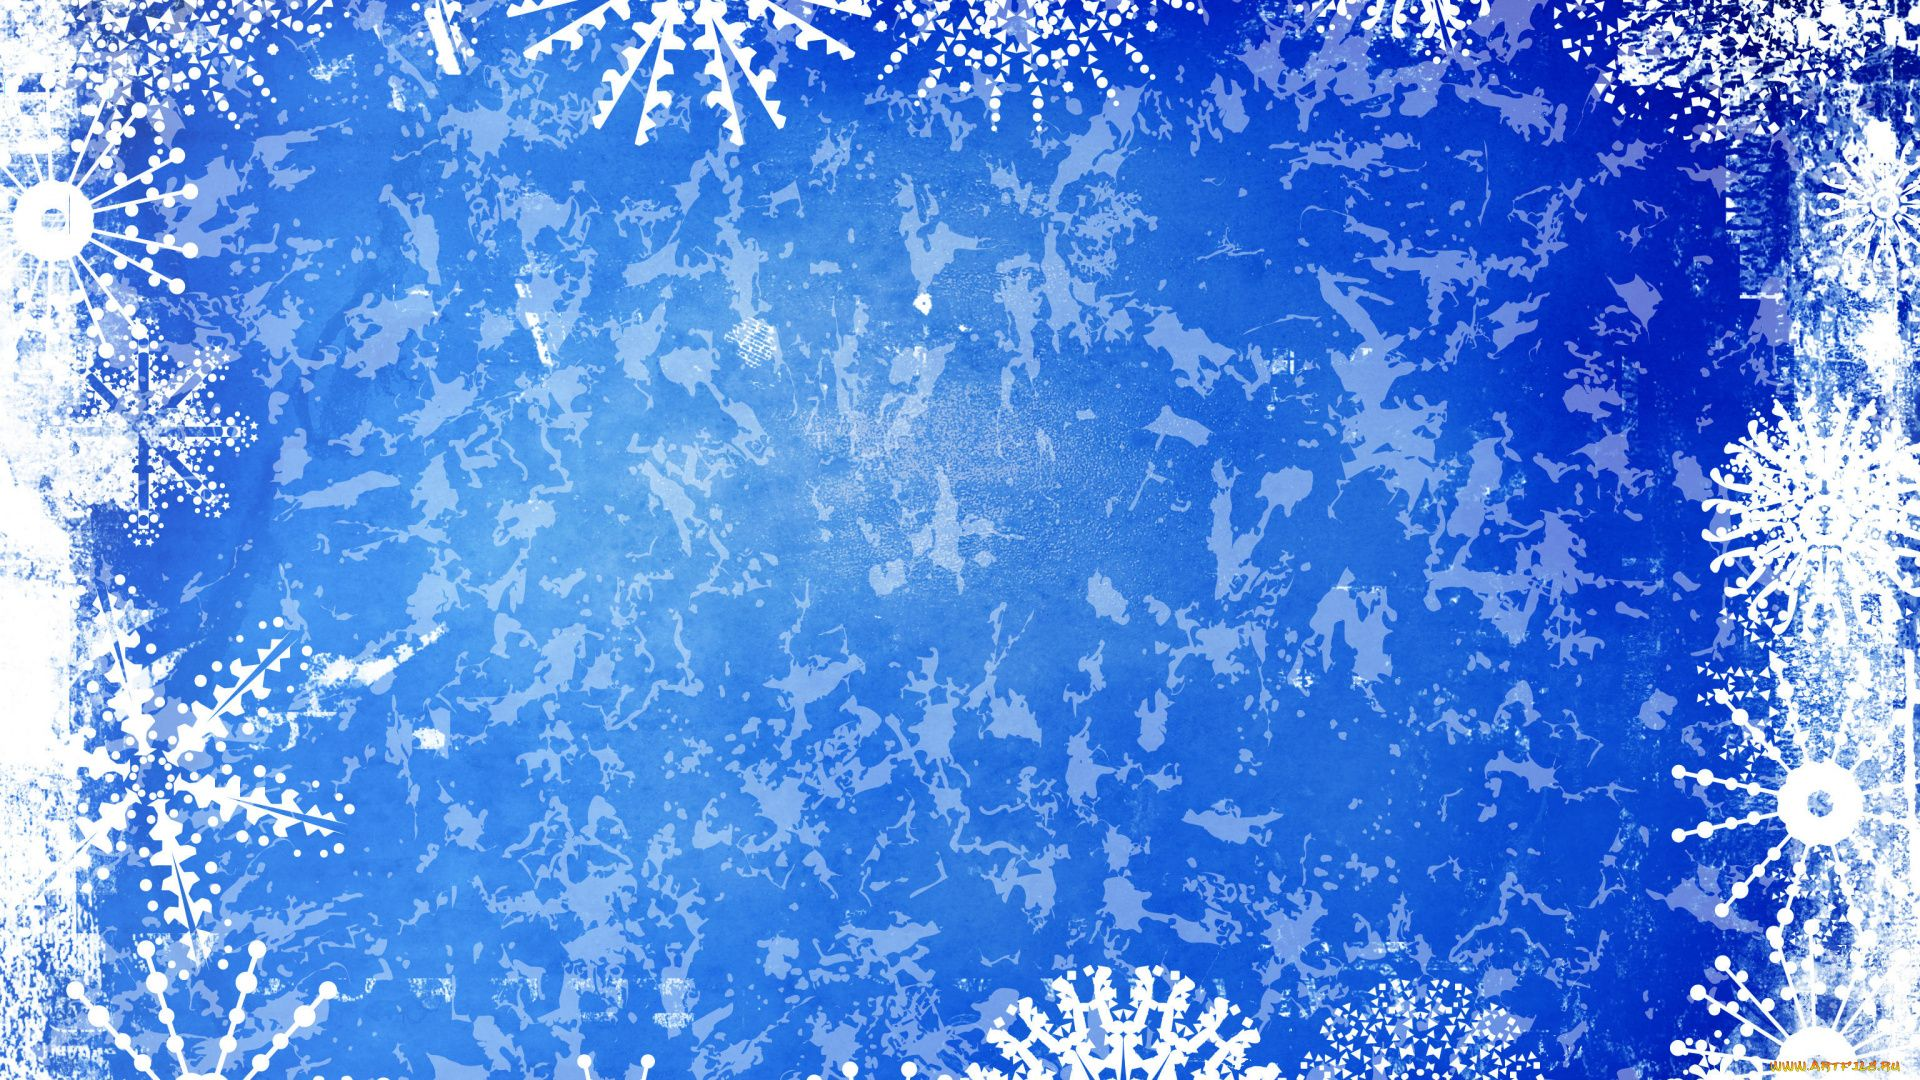 New Year With Snowflakes 1080p Wallpaper